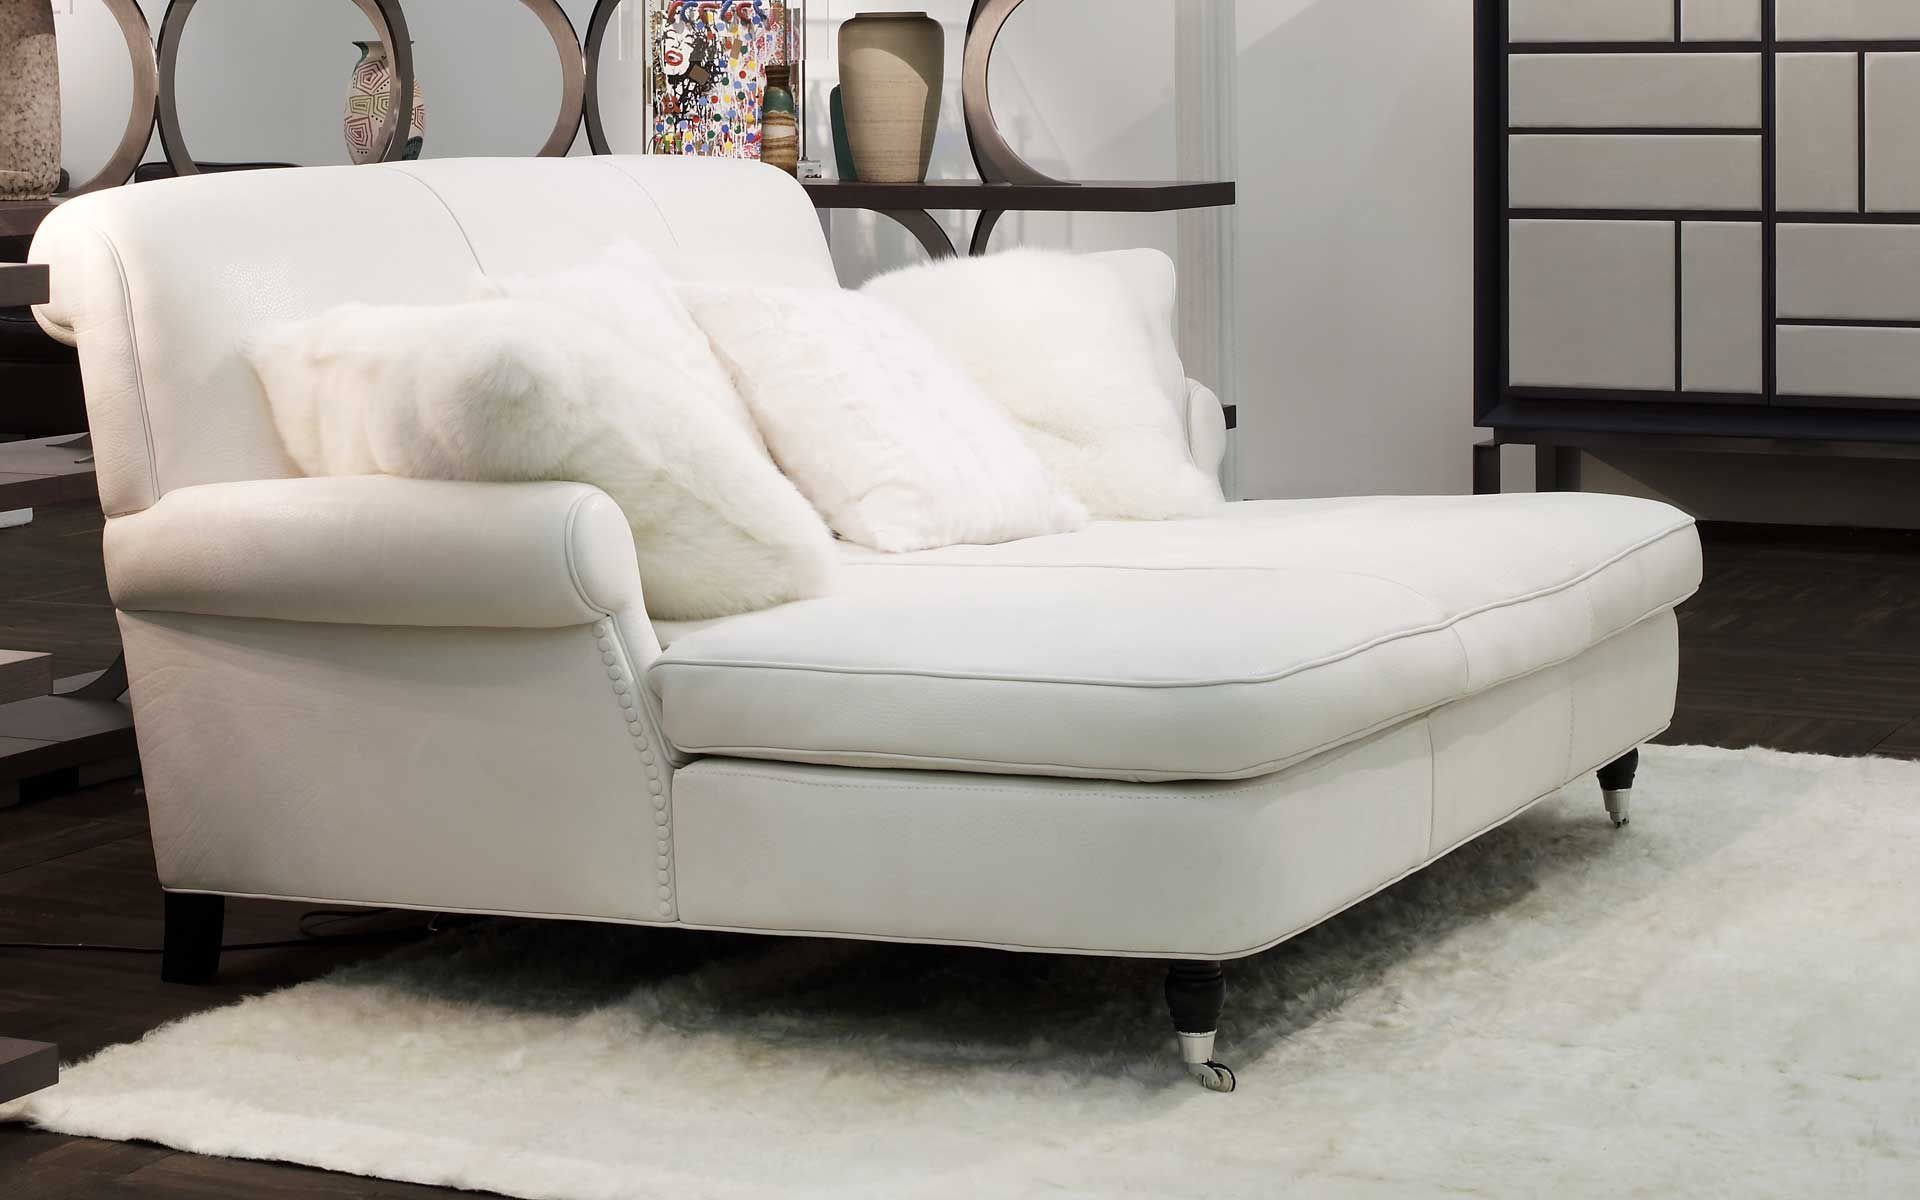 Clean Dimgray Couch Styles Living Room Ideas Breathtaking White ...